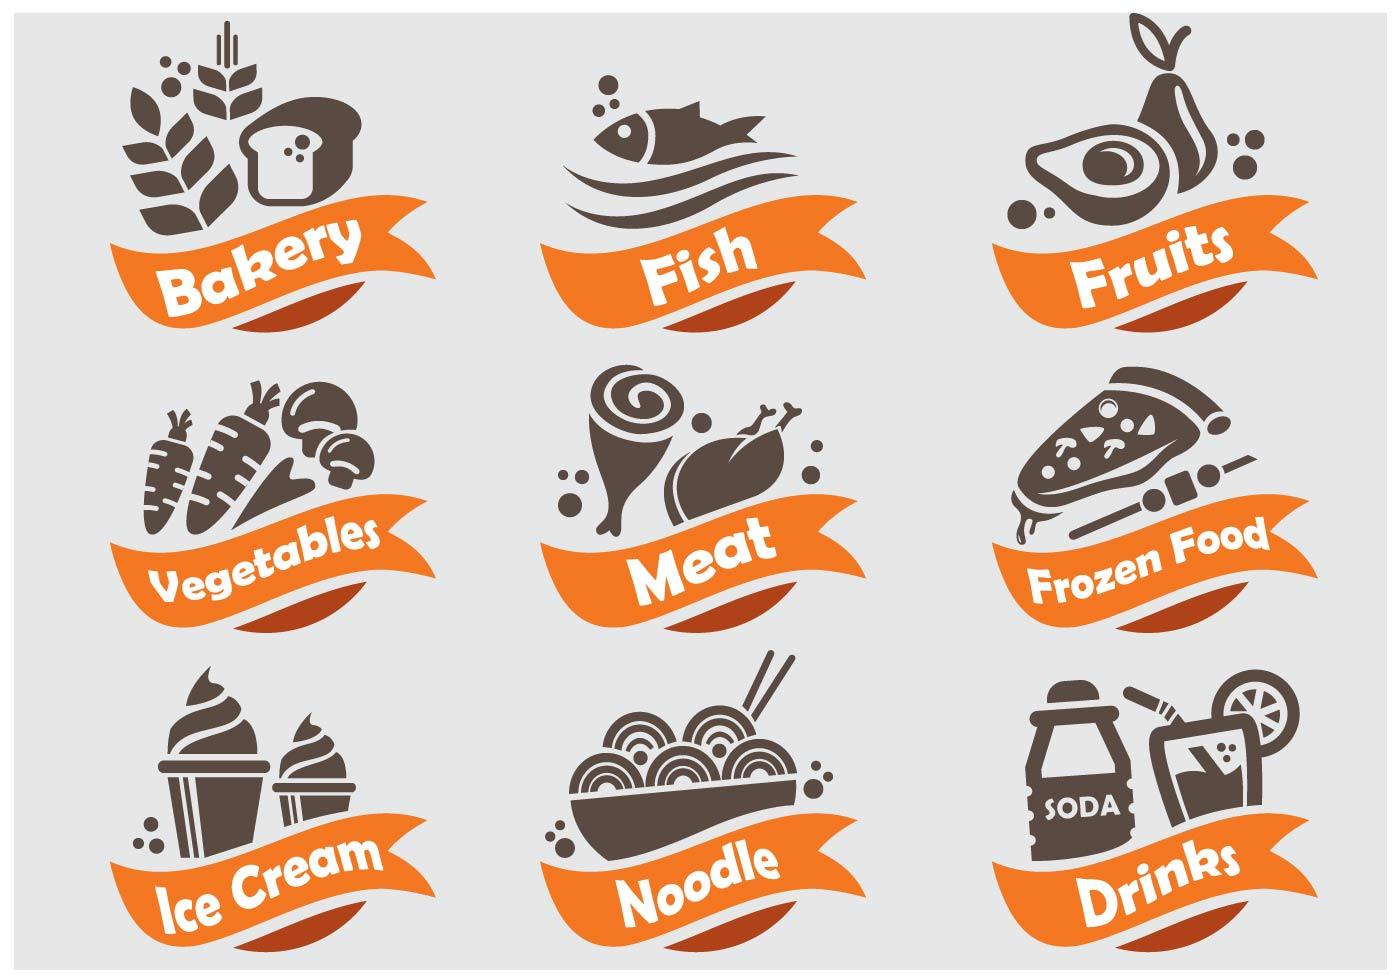 Download Free Vectors & Free ClipArt from EzyVectors.com.